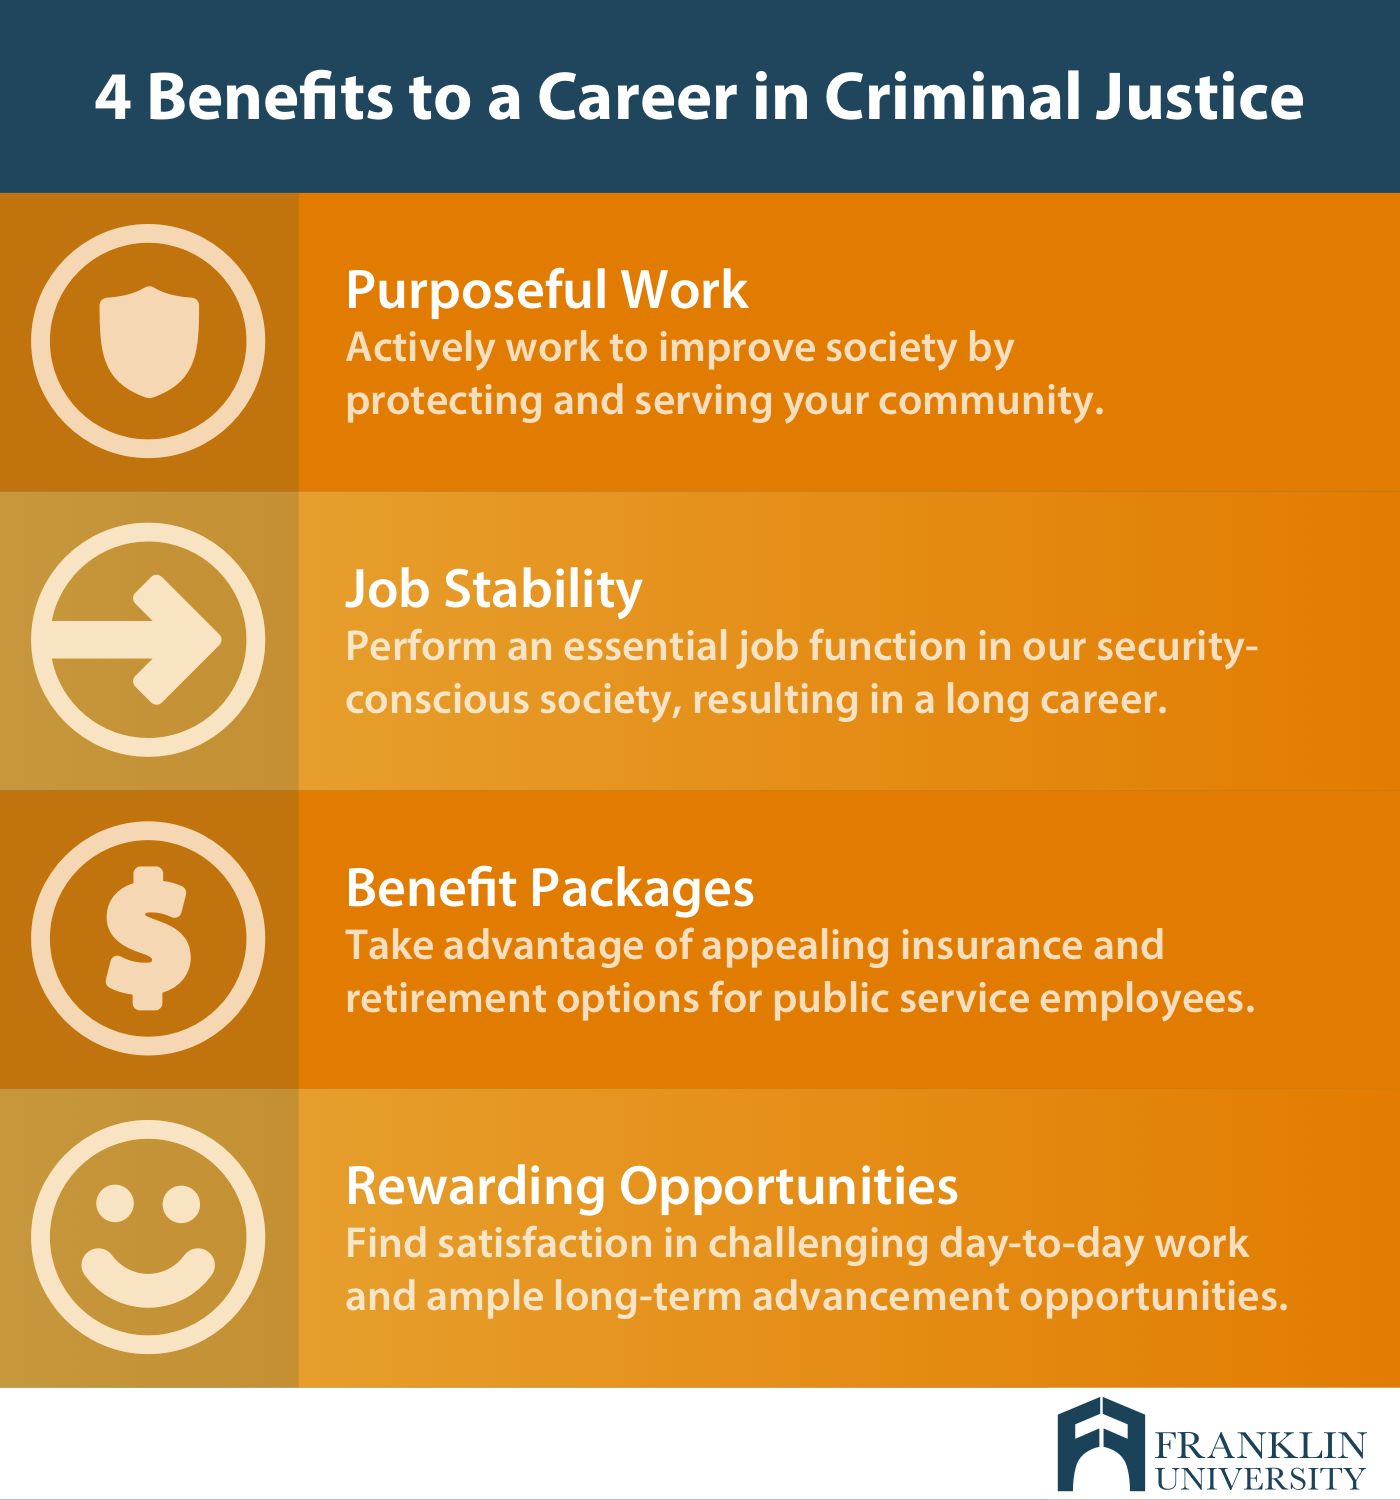 graphic describes 4 benefits to a career in criminal justice